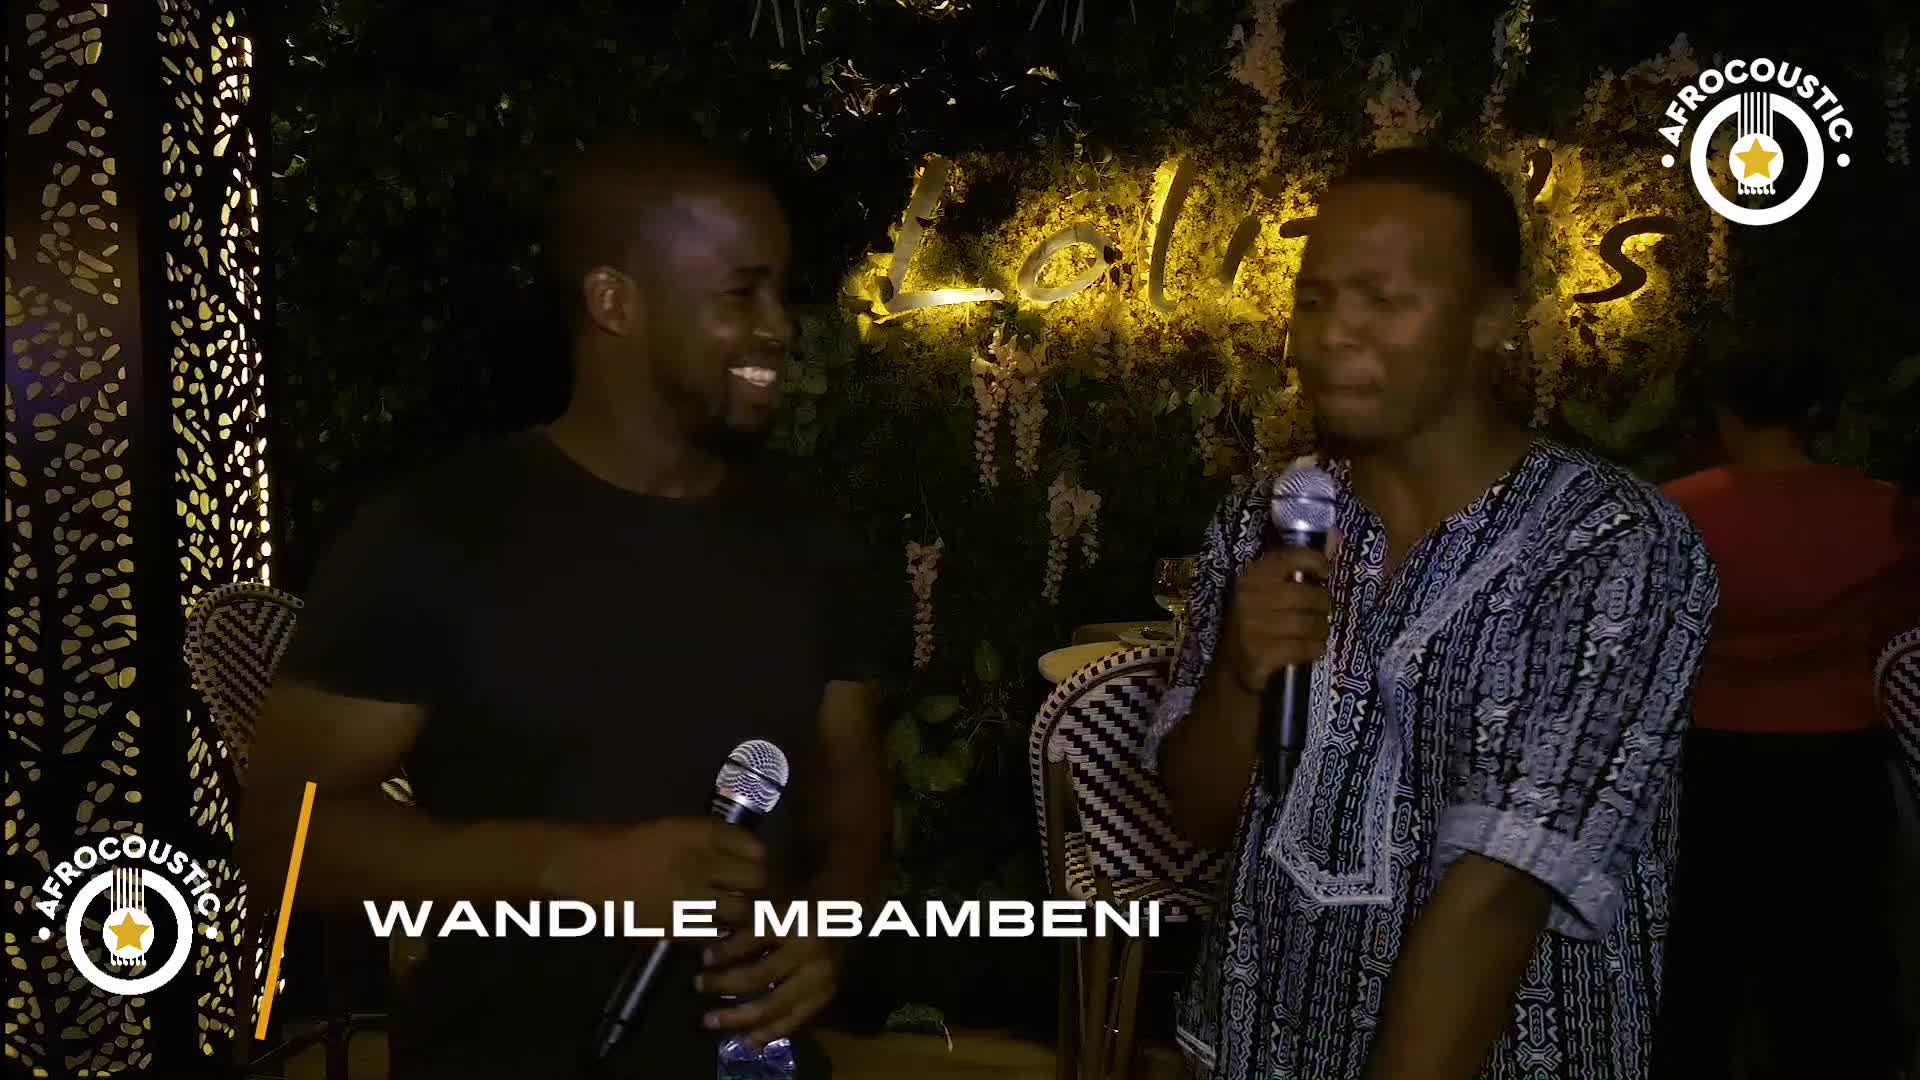 Afrocoustic - Wandile Mbambeni - Interview